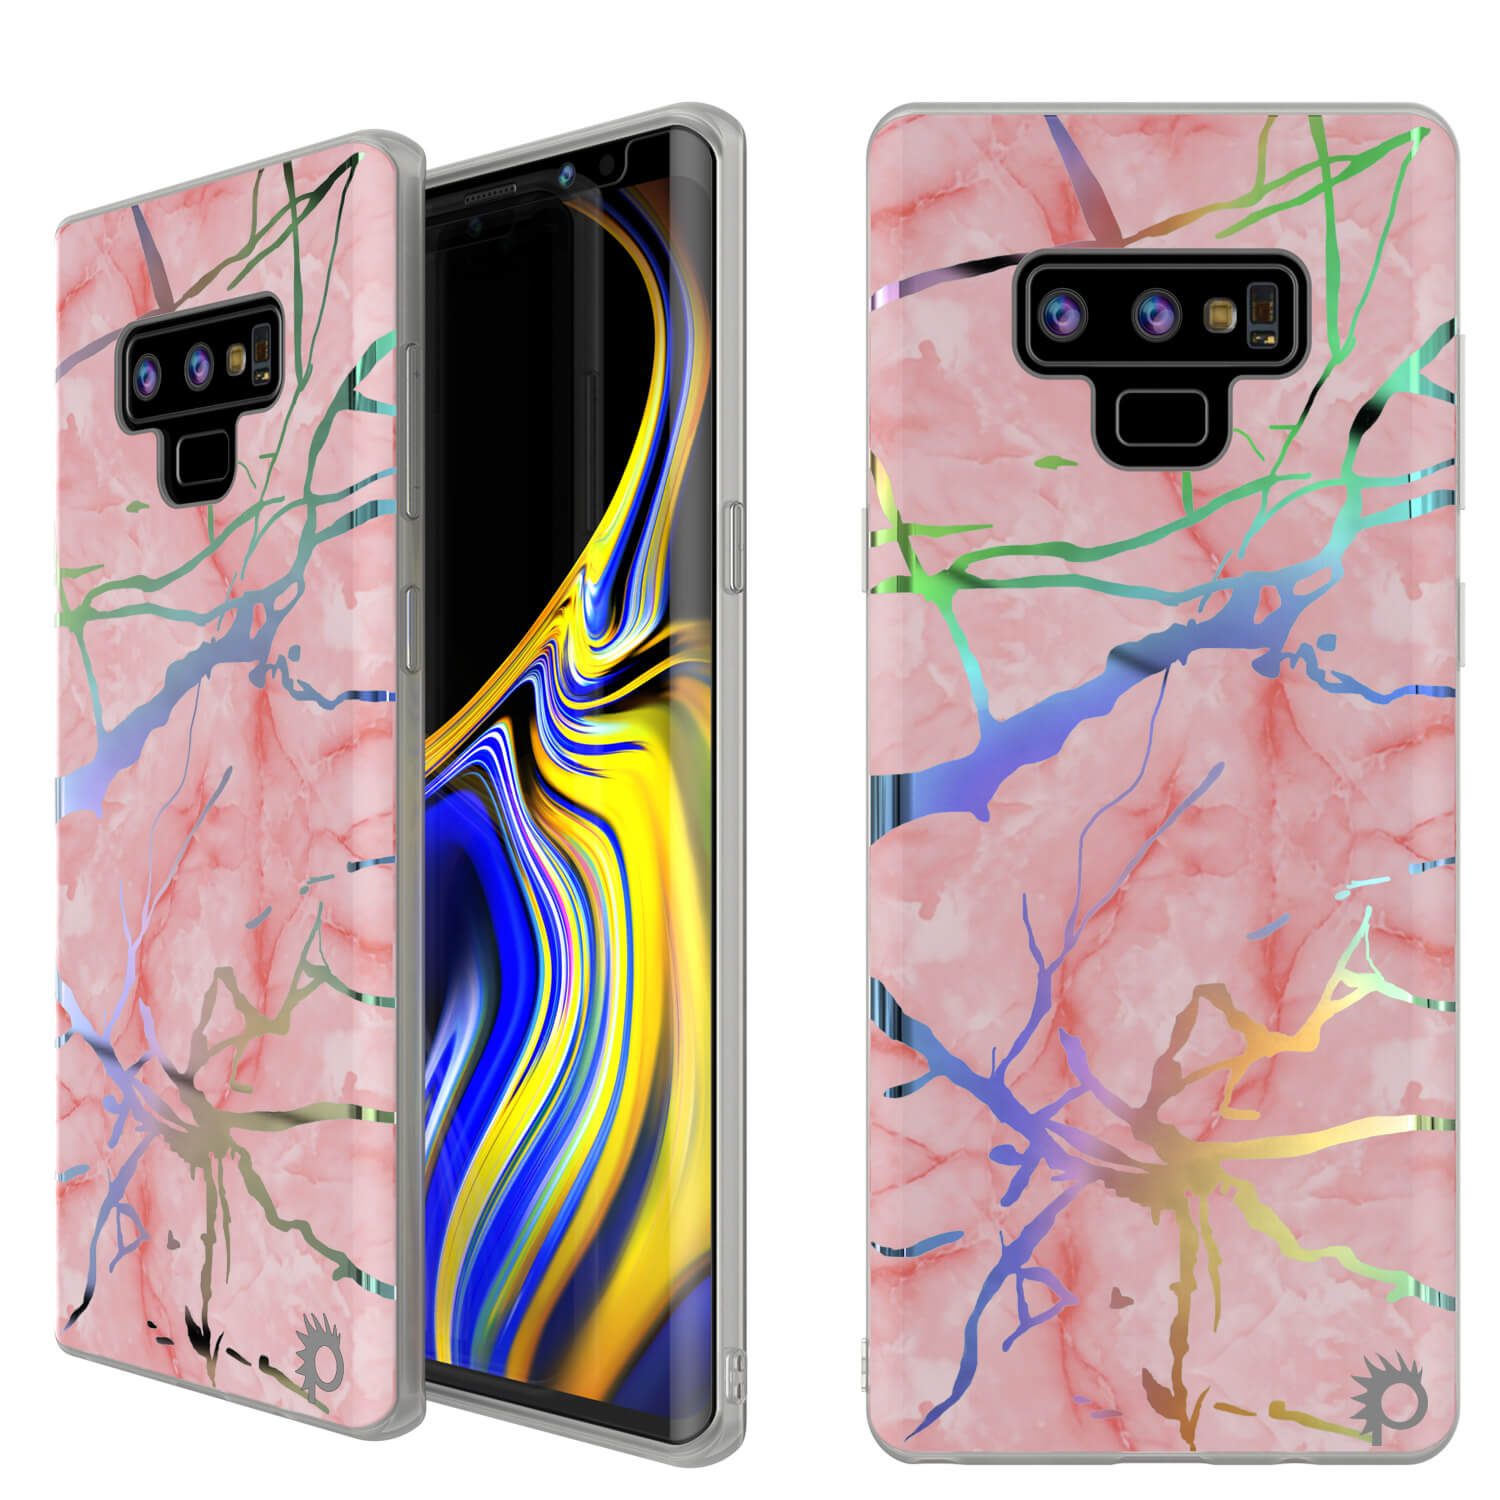 Galaxy Note 9 Full Body W/ Screen Protector Marble Case (Rose Mirage)